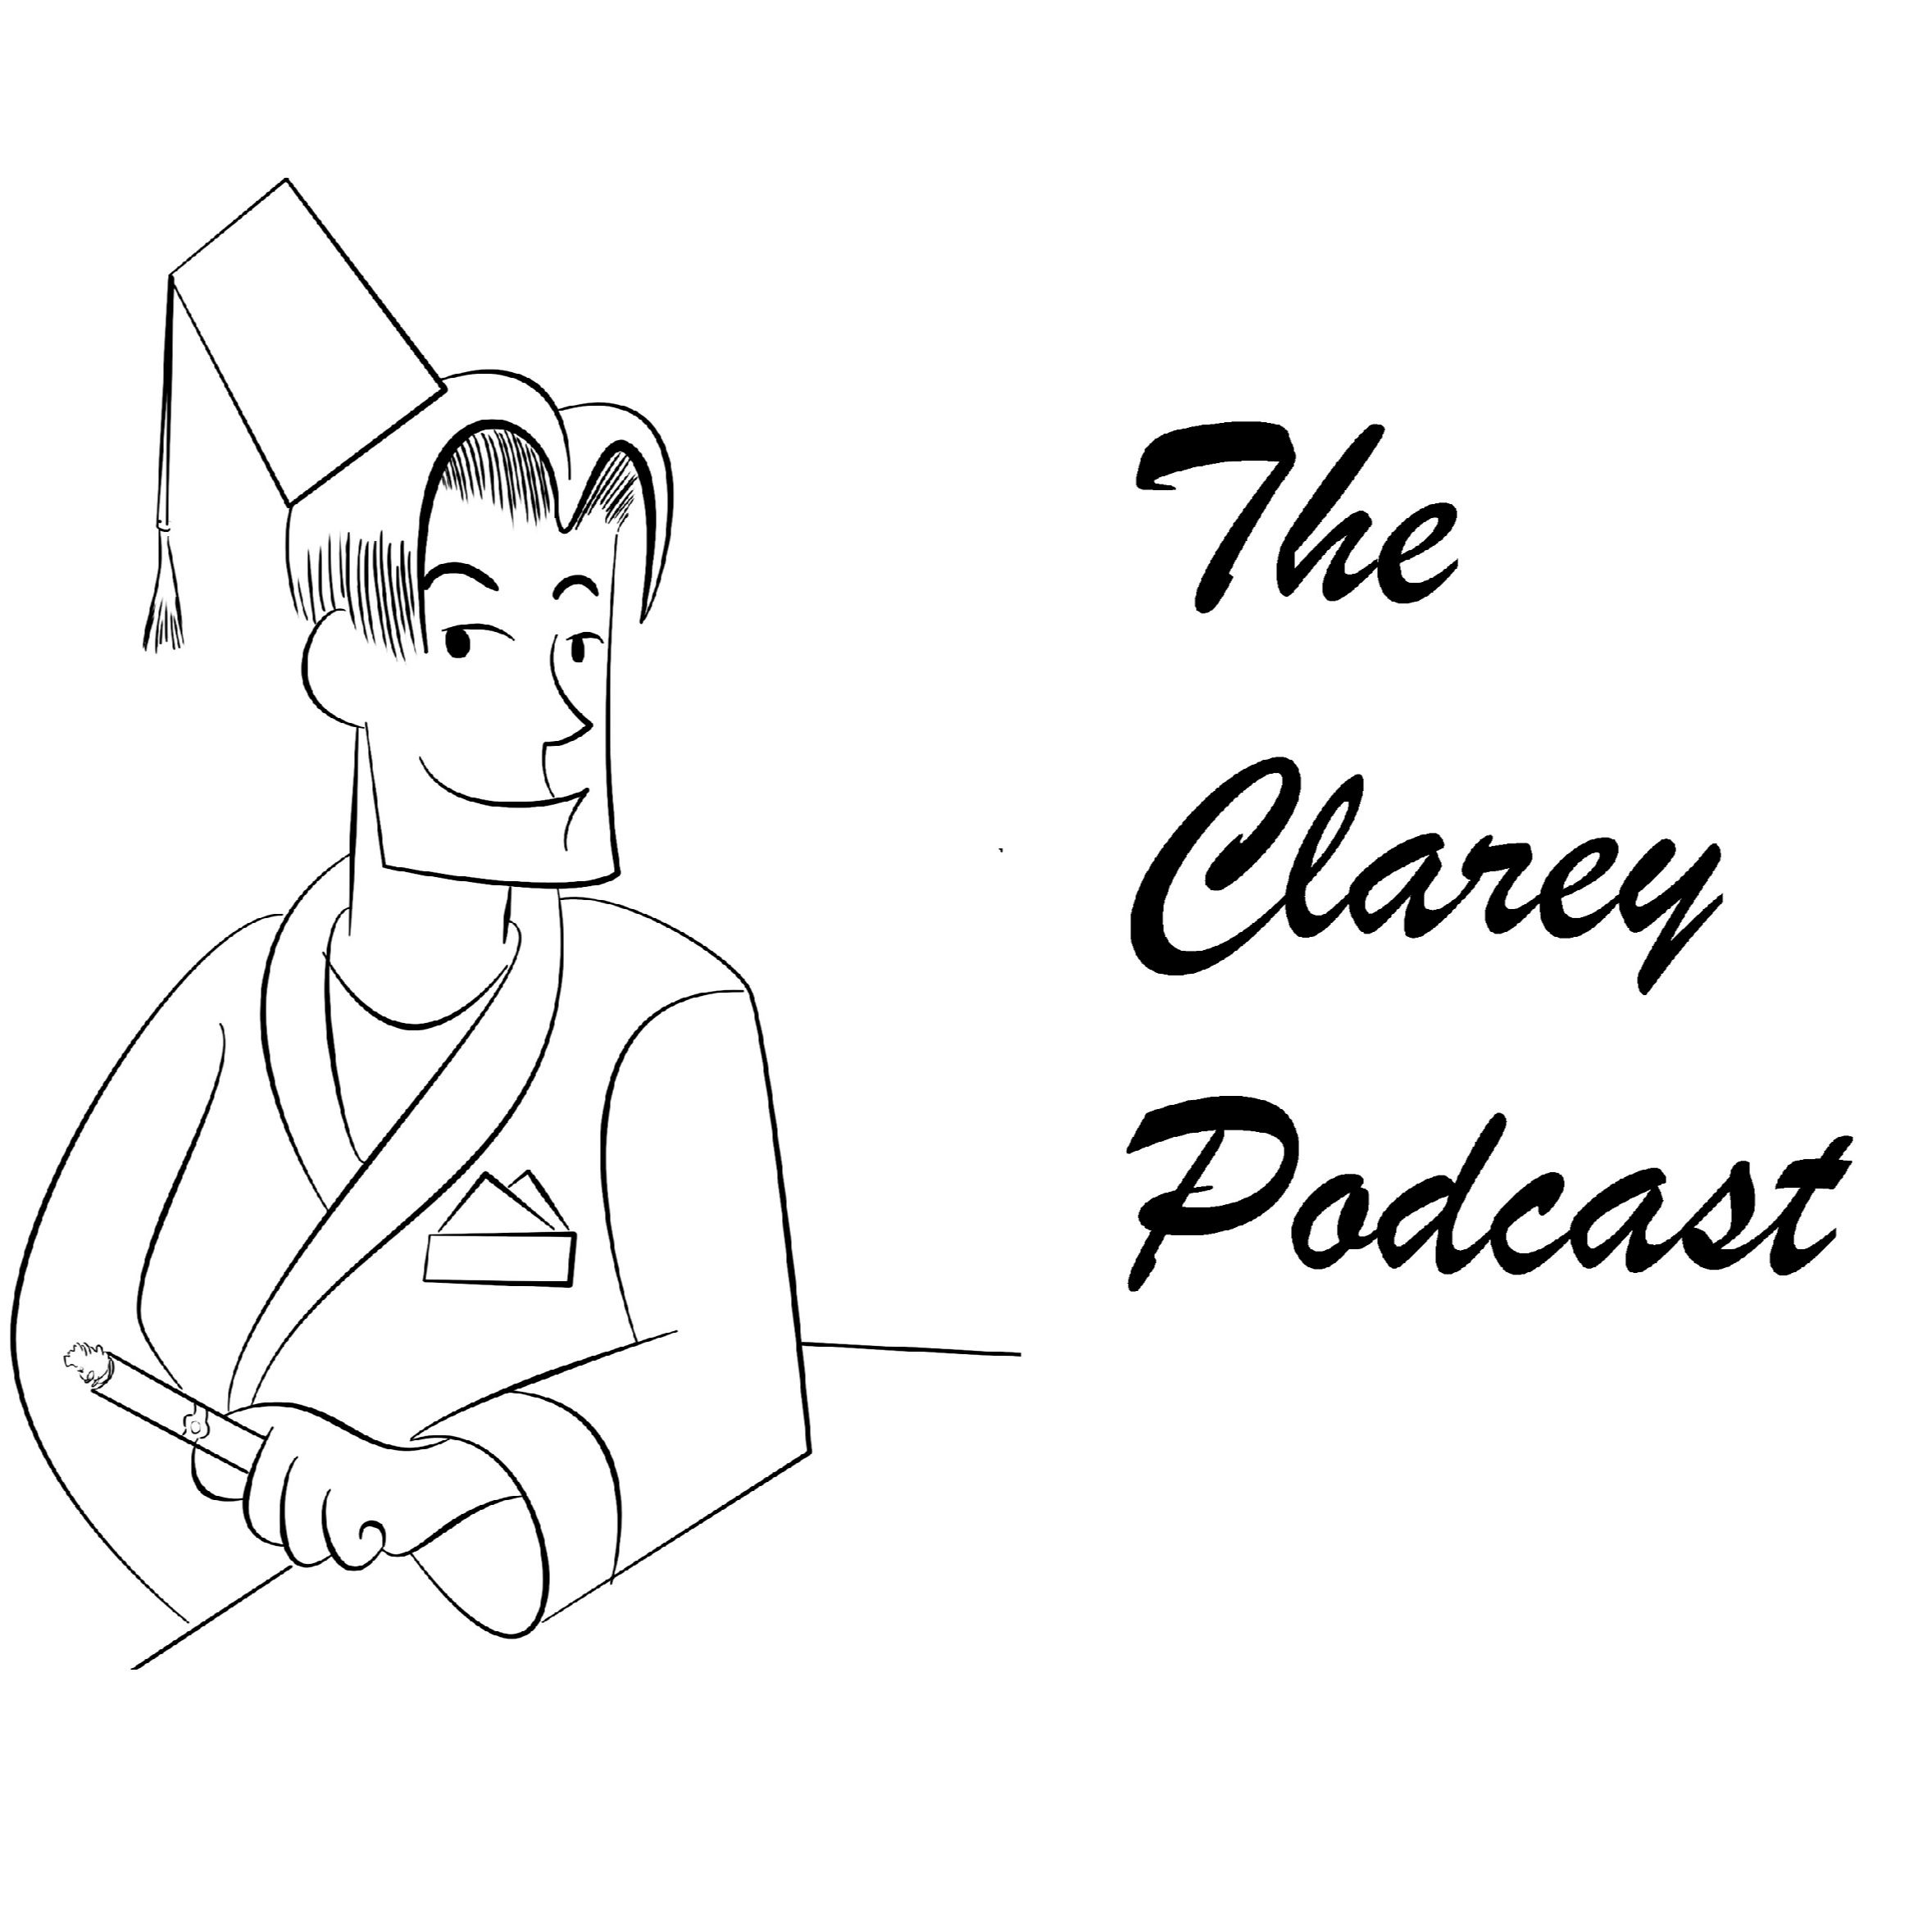 The Clarey Podcast